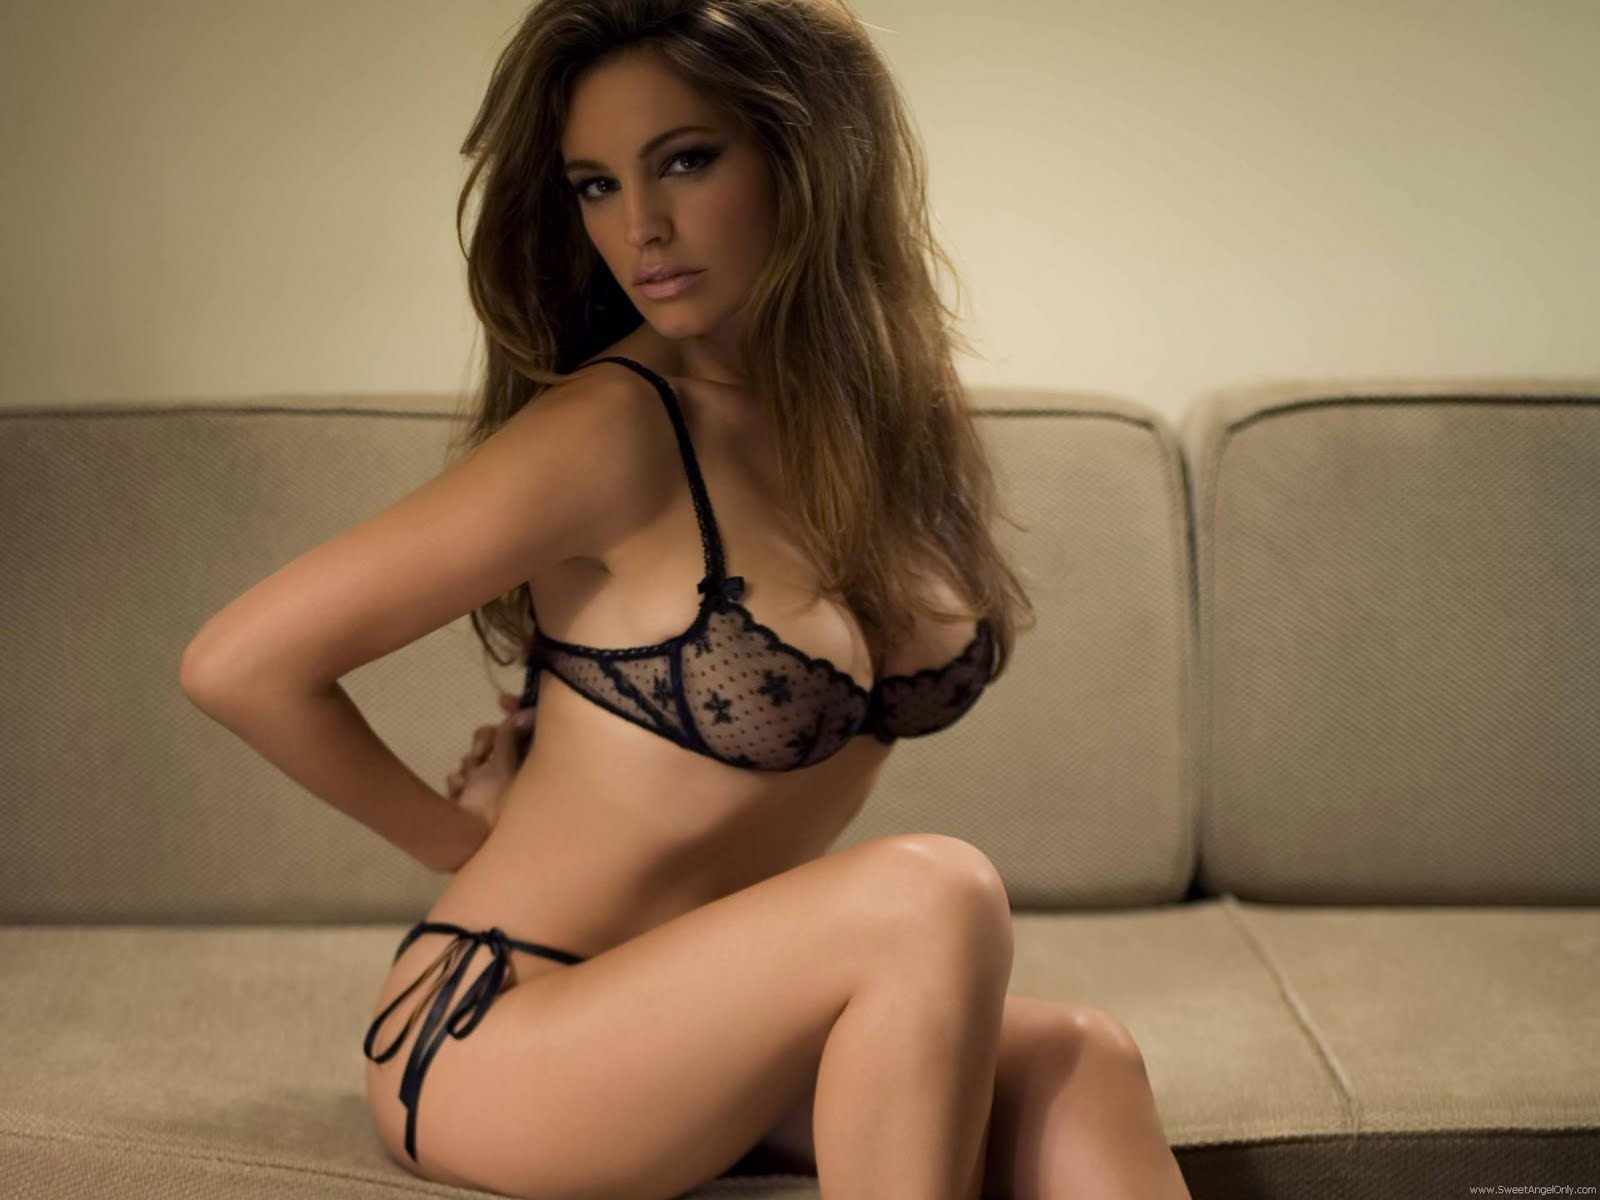 http://2.bp.blogspot.com/-f7br9hUvUcg/TeD5y6aovvI/AAAAAAAAFpI/_2CVJJsnFVw/s1600/kelly_brook_hot_HD_Wallpaper_101.jpg